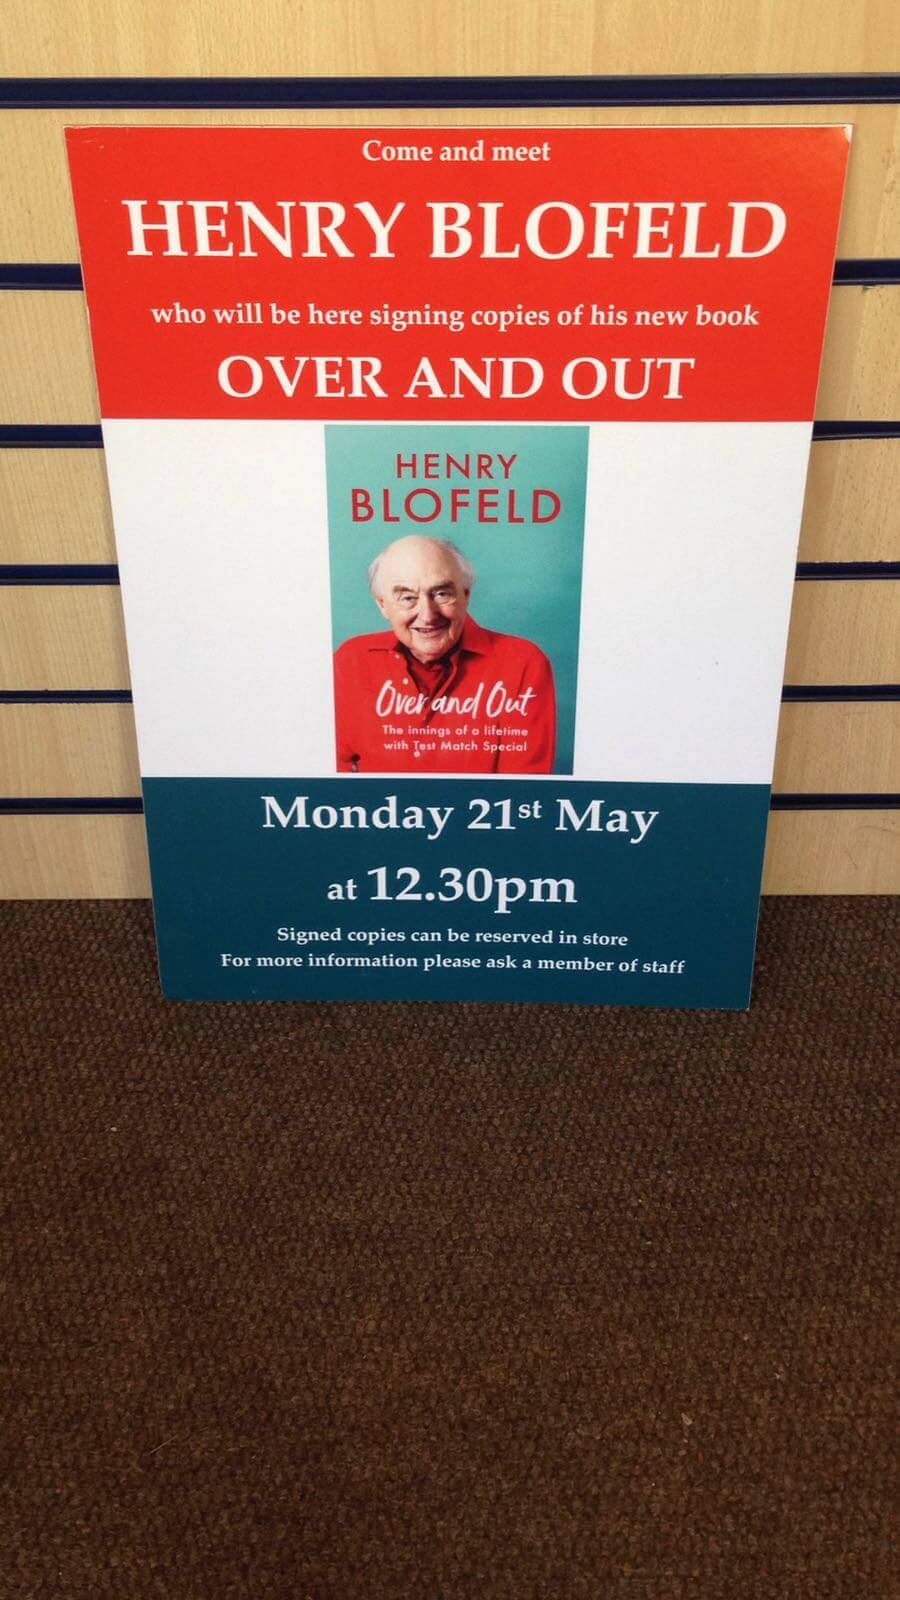 Blofeld coming to Henley